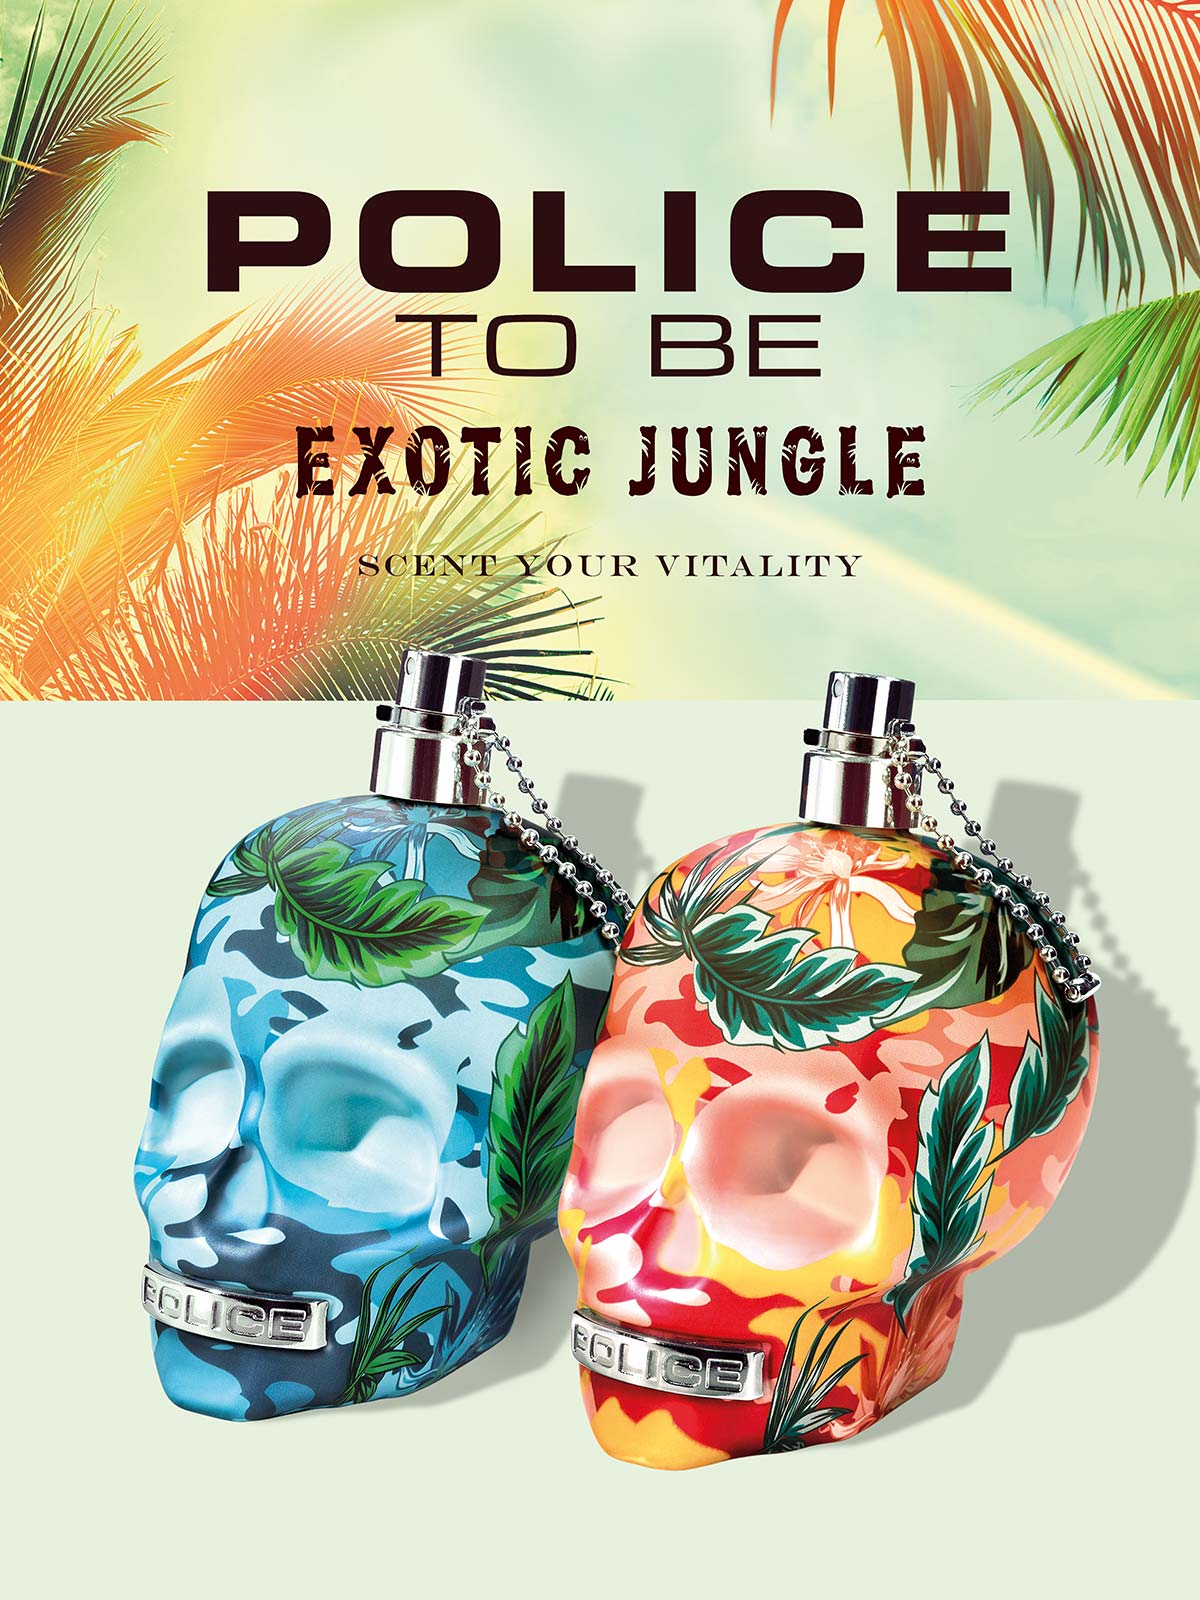 Ein Bild des Police to Be Exotic Jungle Parfume Visual